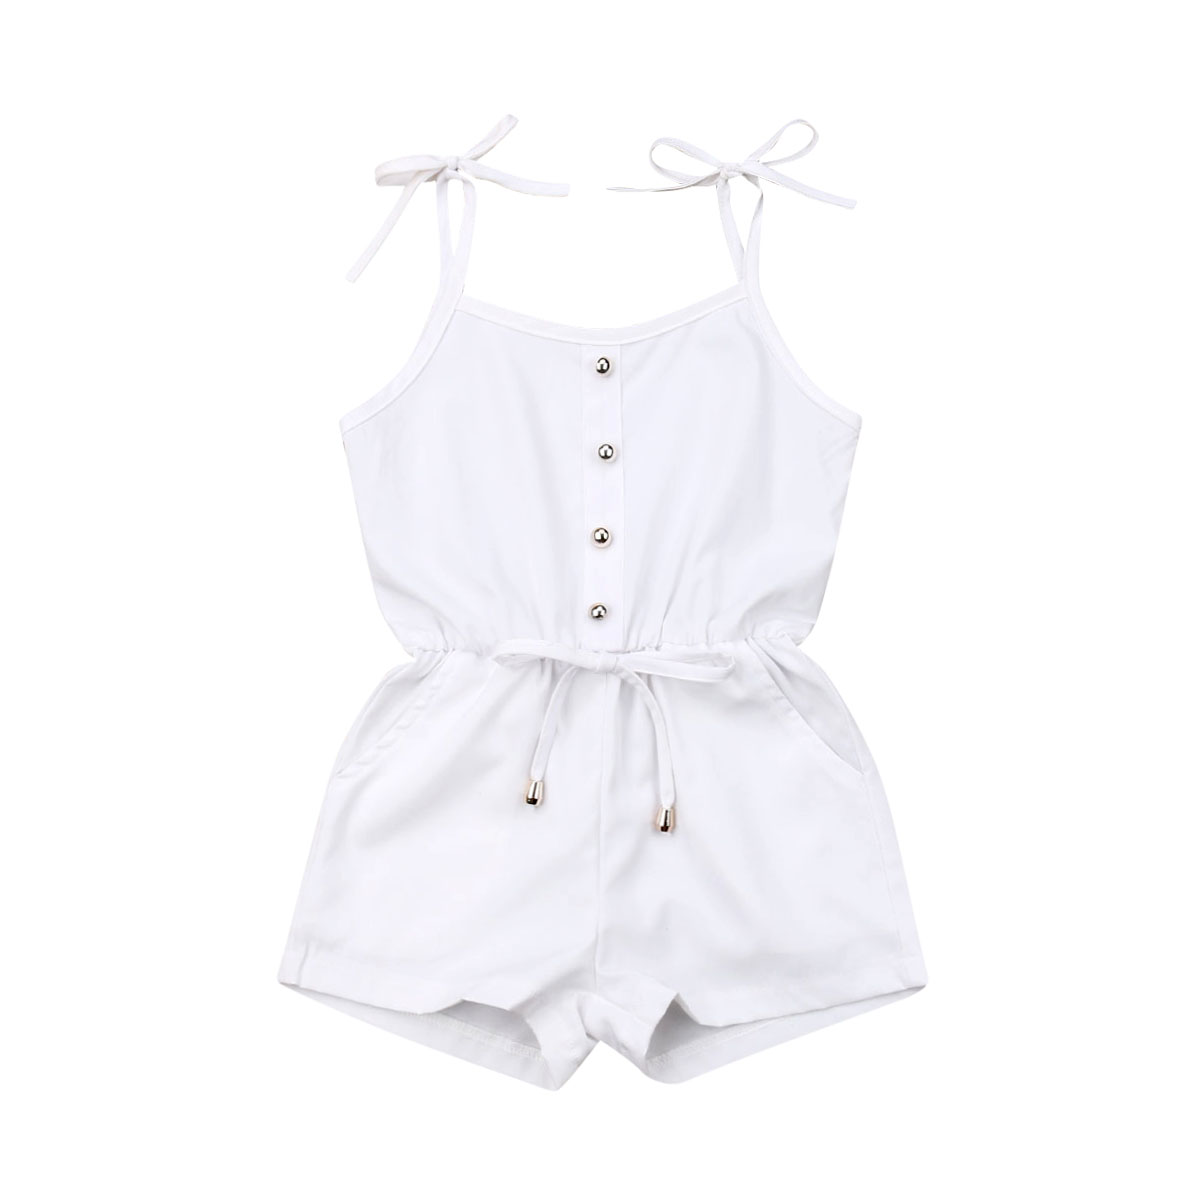 Baby Summer Clothes 2019 Toddler Kid Baby Girl Sleeveless Ruffle Romper Casual Jumpsuit Outfit Clothes 0-3Y